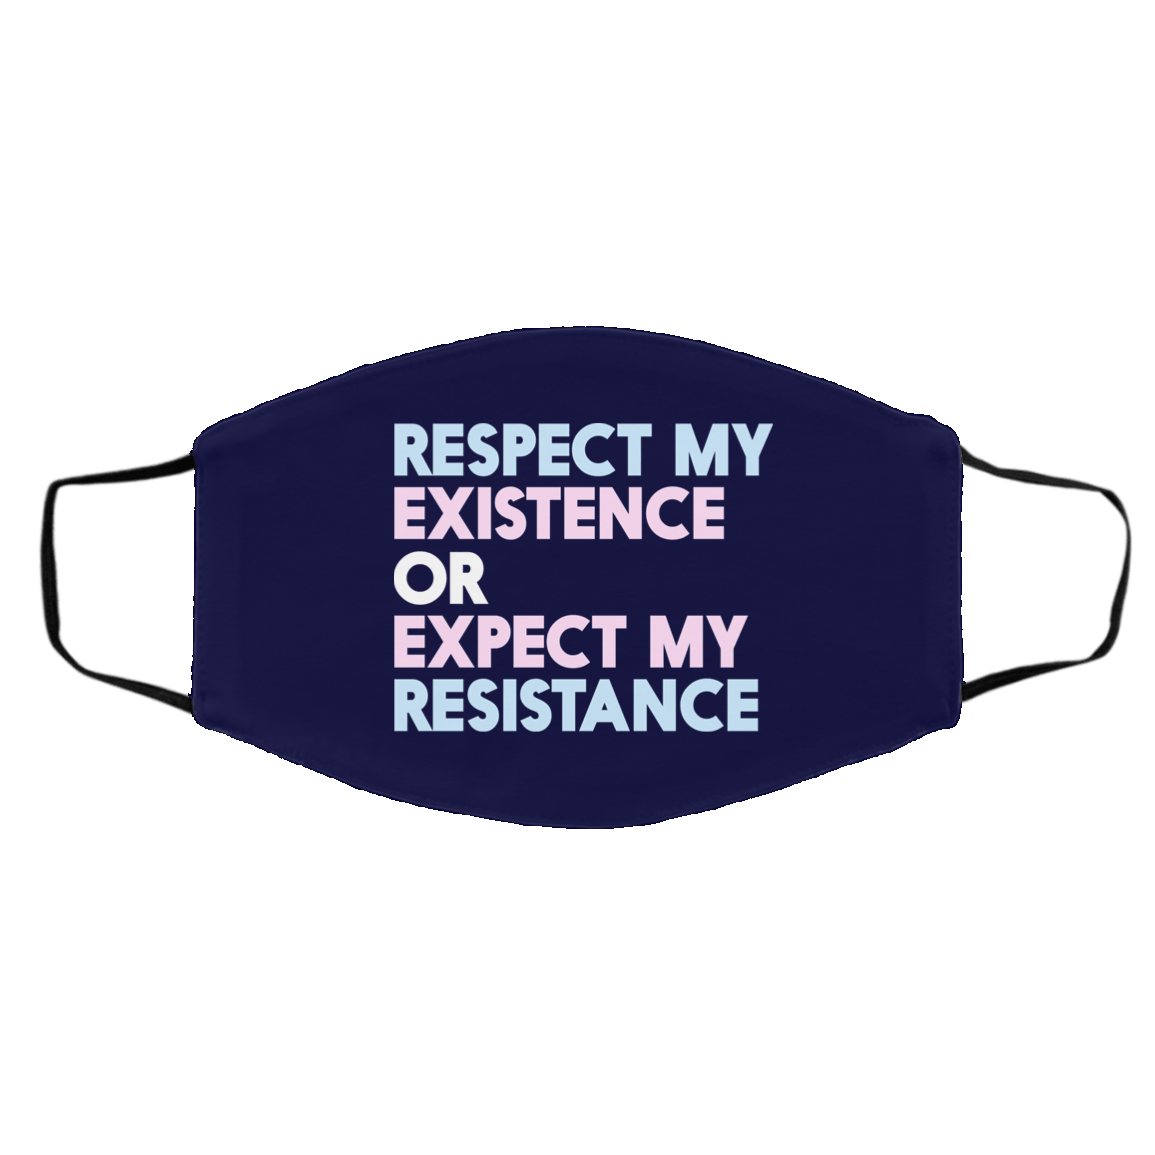 Respect My Existence Or Expect My Resistance Face Mask 1274-13182-89726785-59070 - Tee Ript